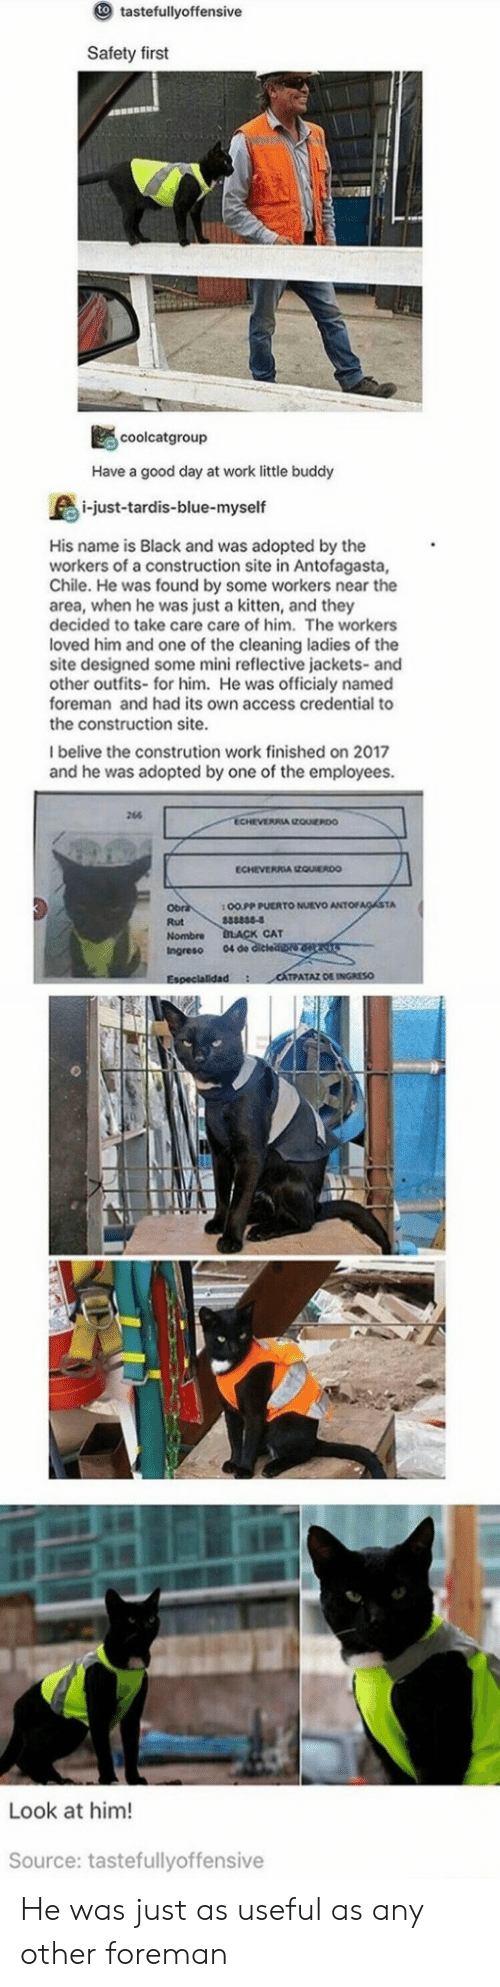 Work, Access, and Black: to  tastefullyoffensive  Safety first  coolcatgroup  Have a good day at work little buddy  i-just-tardis-blue-myself  His name is Black and was adopted by the  workers of a construction site in Antofagasta,  Chile. He was found by some workers near the  area, when he was just a kitten, and they  decided to take care care of him. The workers  loved him and one of the cleaning ladies of the  site designed some mini reflective jackets-and  other outfits- for him. He was officialy named  foreman and had its own access credential to  the construction site.  Ibelive the constrution work finished on 2017  and he was adopted by one of the employees.  264  ECHEVERIA EQUIEROO  1 O0 PP PUERTO NUEVO ANTOFACASTA  Rut  Nombre  Ingreso 04 de  CAT  IPATAZ DE INGRESO  Look at him!  Source: tastefullyoffensive He was just as useful as any other foreman